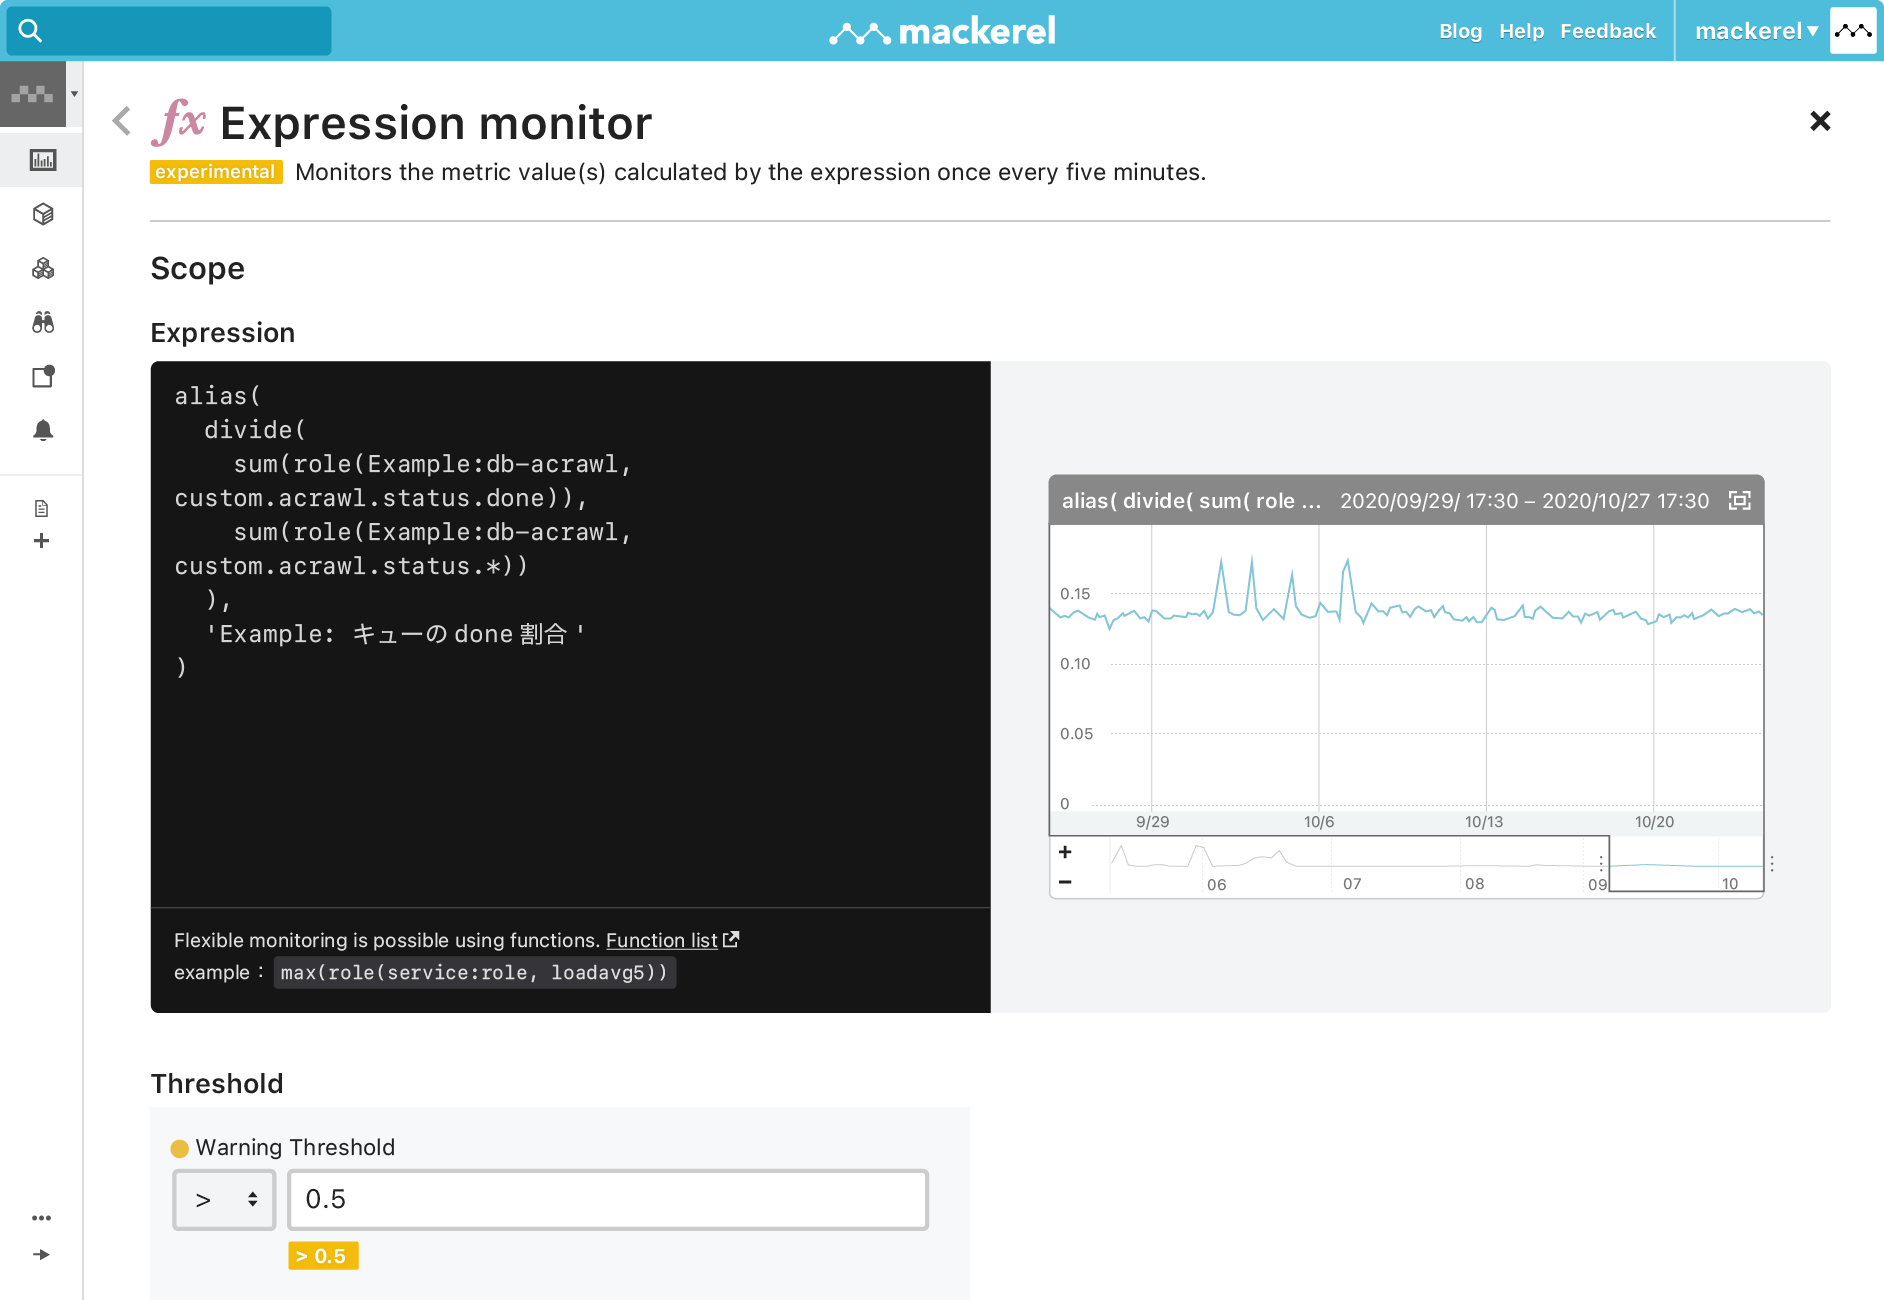 Monitor metrics calculated by expressions